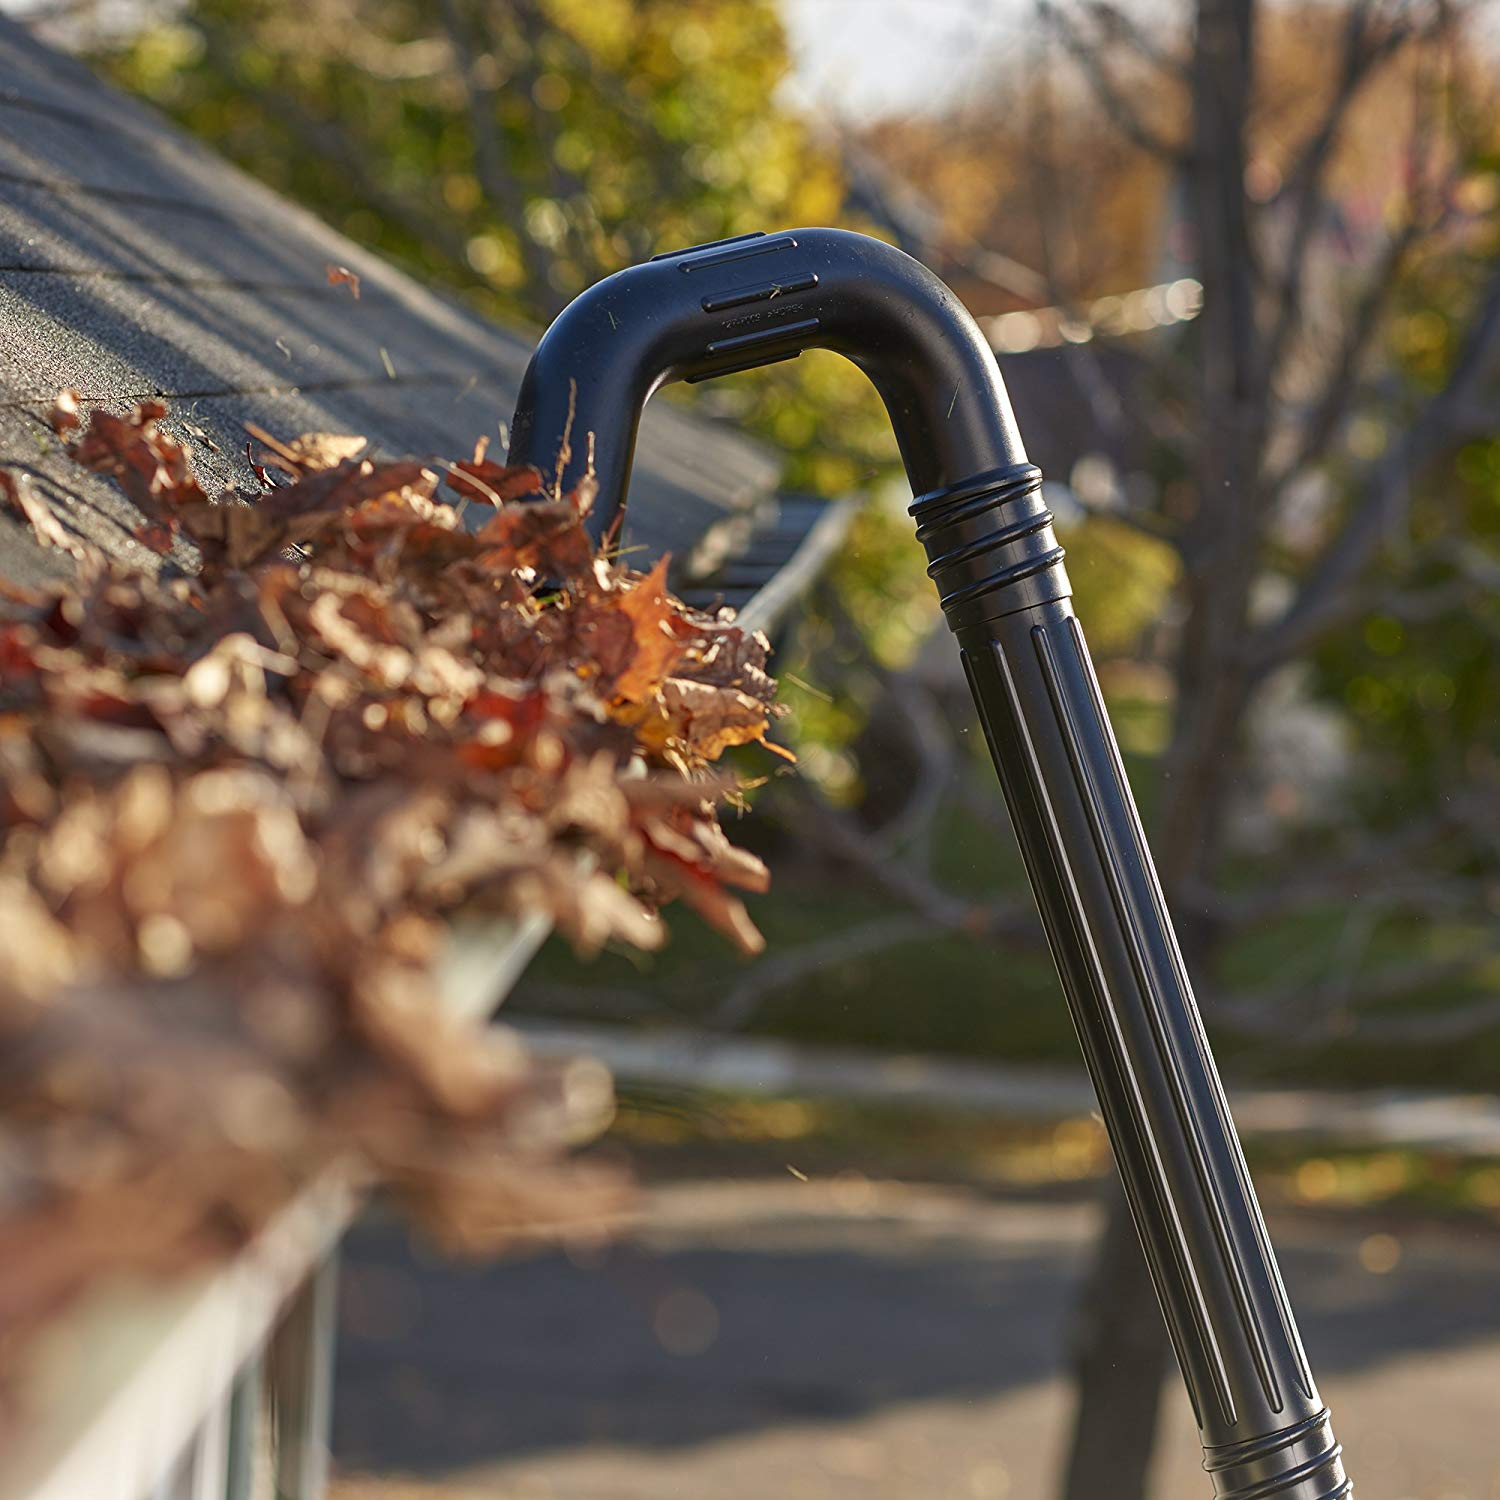 How Gutter Cleaning Systems Help Make Your Job Easier